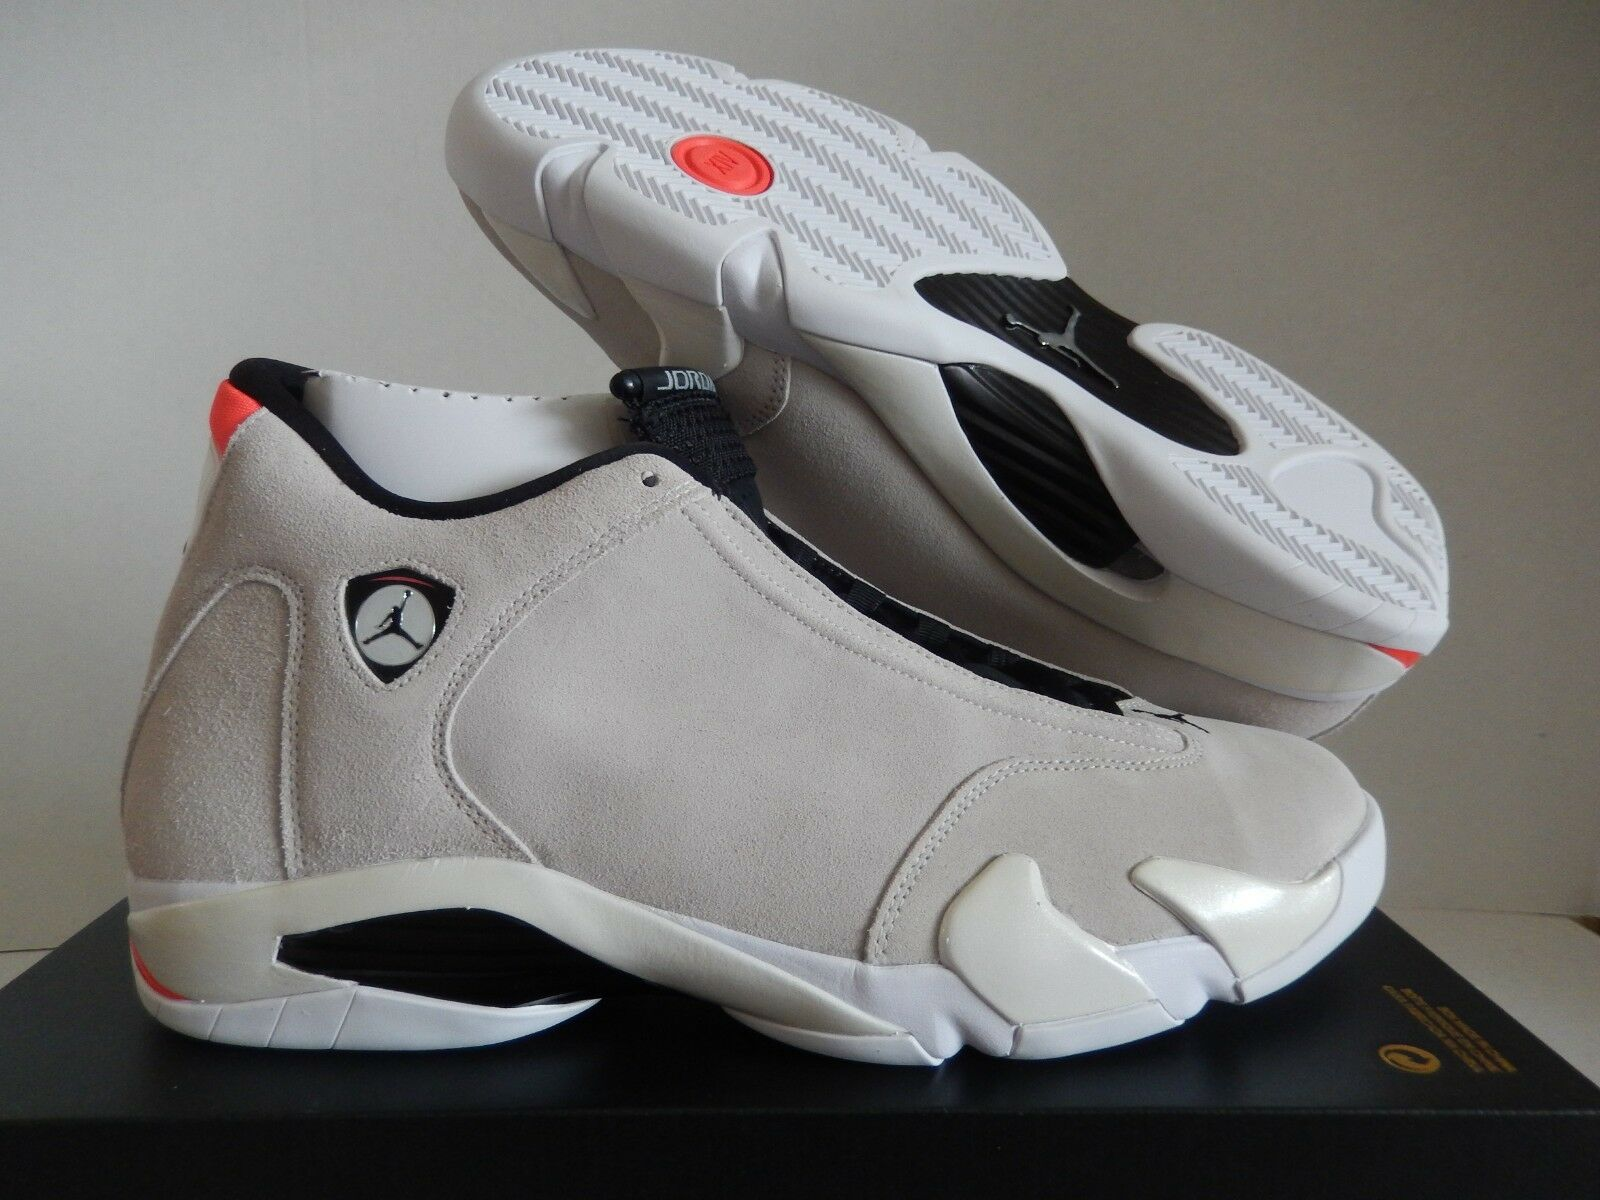 NIKE AIR JORDAN 14 RETRO DESERT SAND-BLACK-WHITE SZ 14 [487471-021]